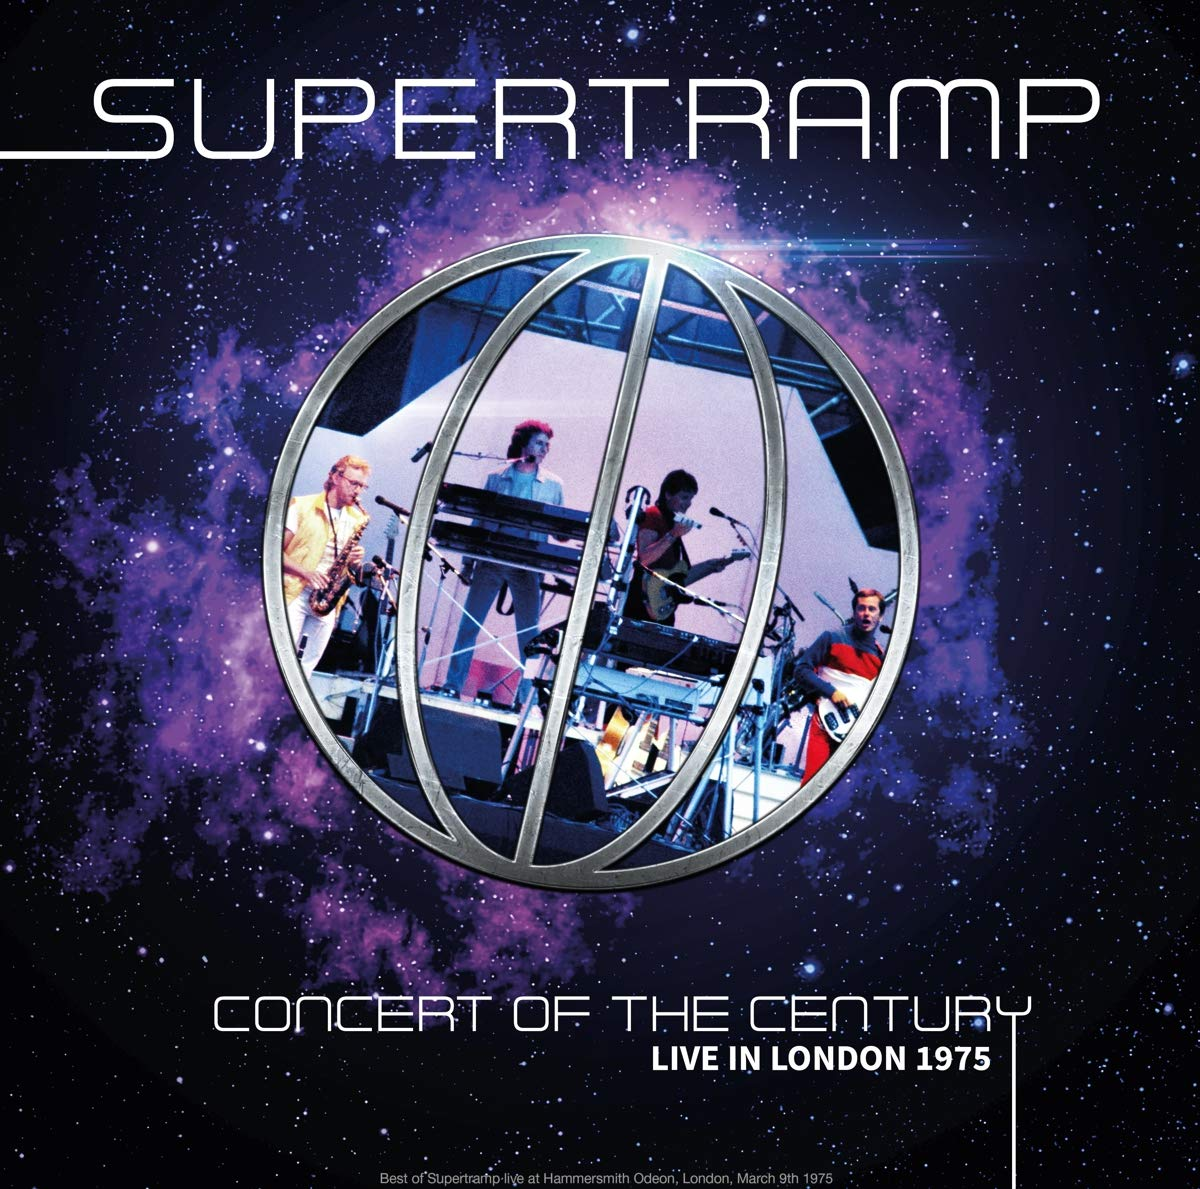 Concert of the Century Live in London 1975